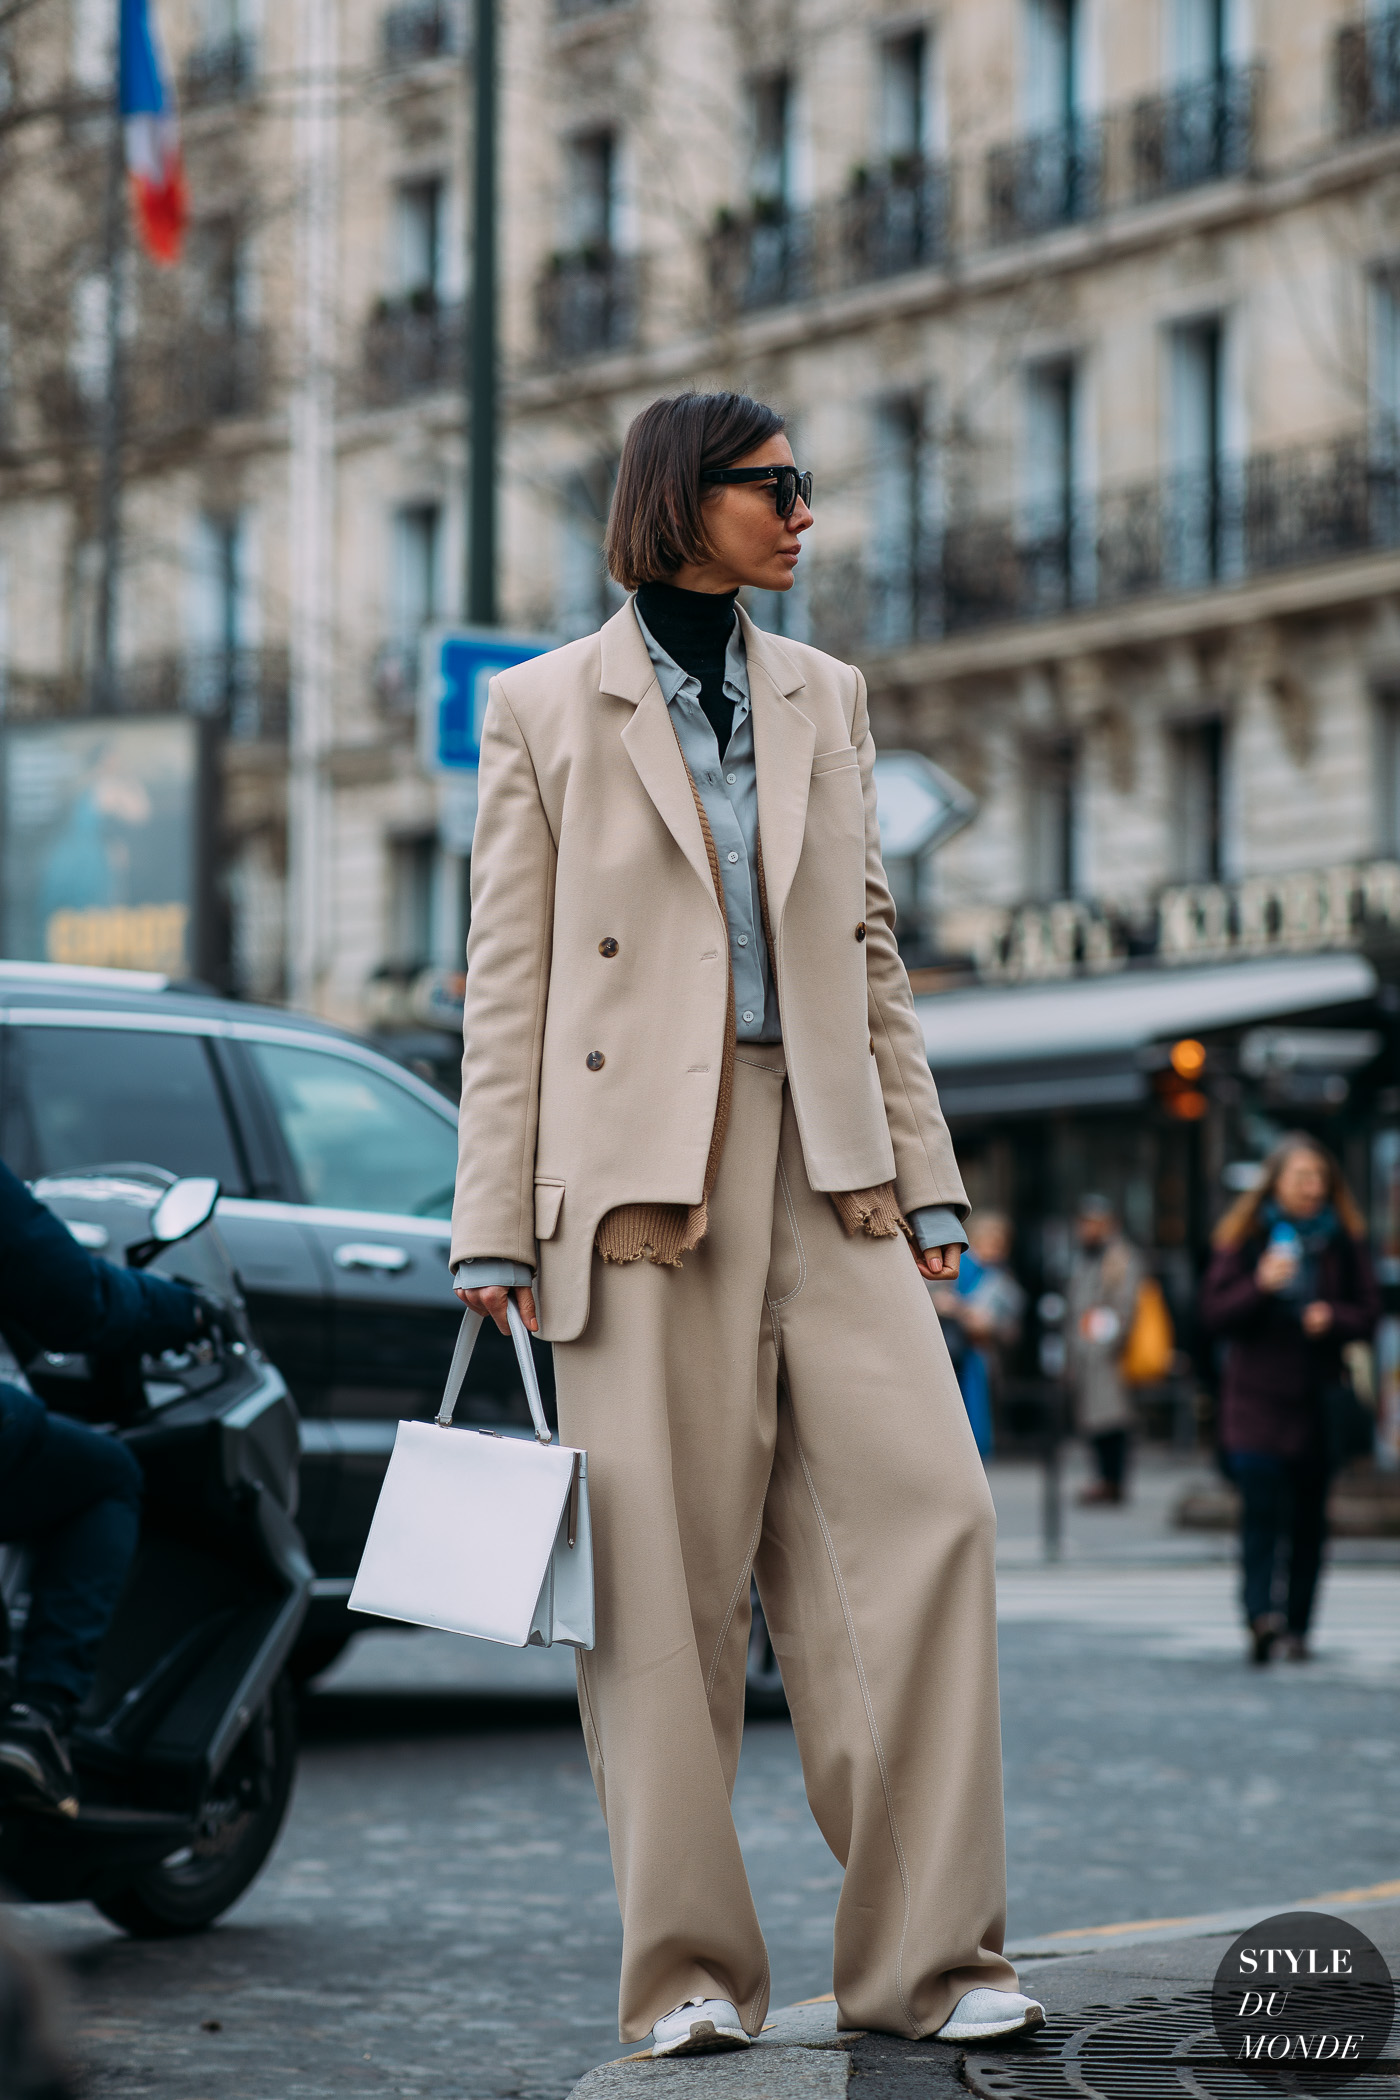 Julie Pelipas by STYLEDUMONDE Street Style Fashion Photography FW18 20180303_48A9651